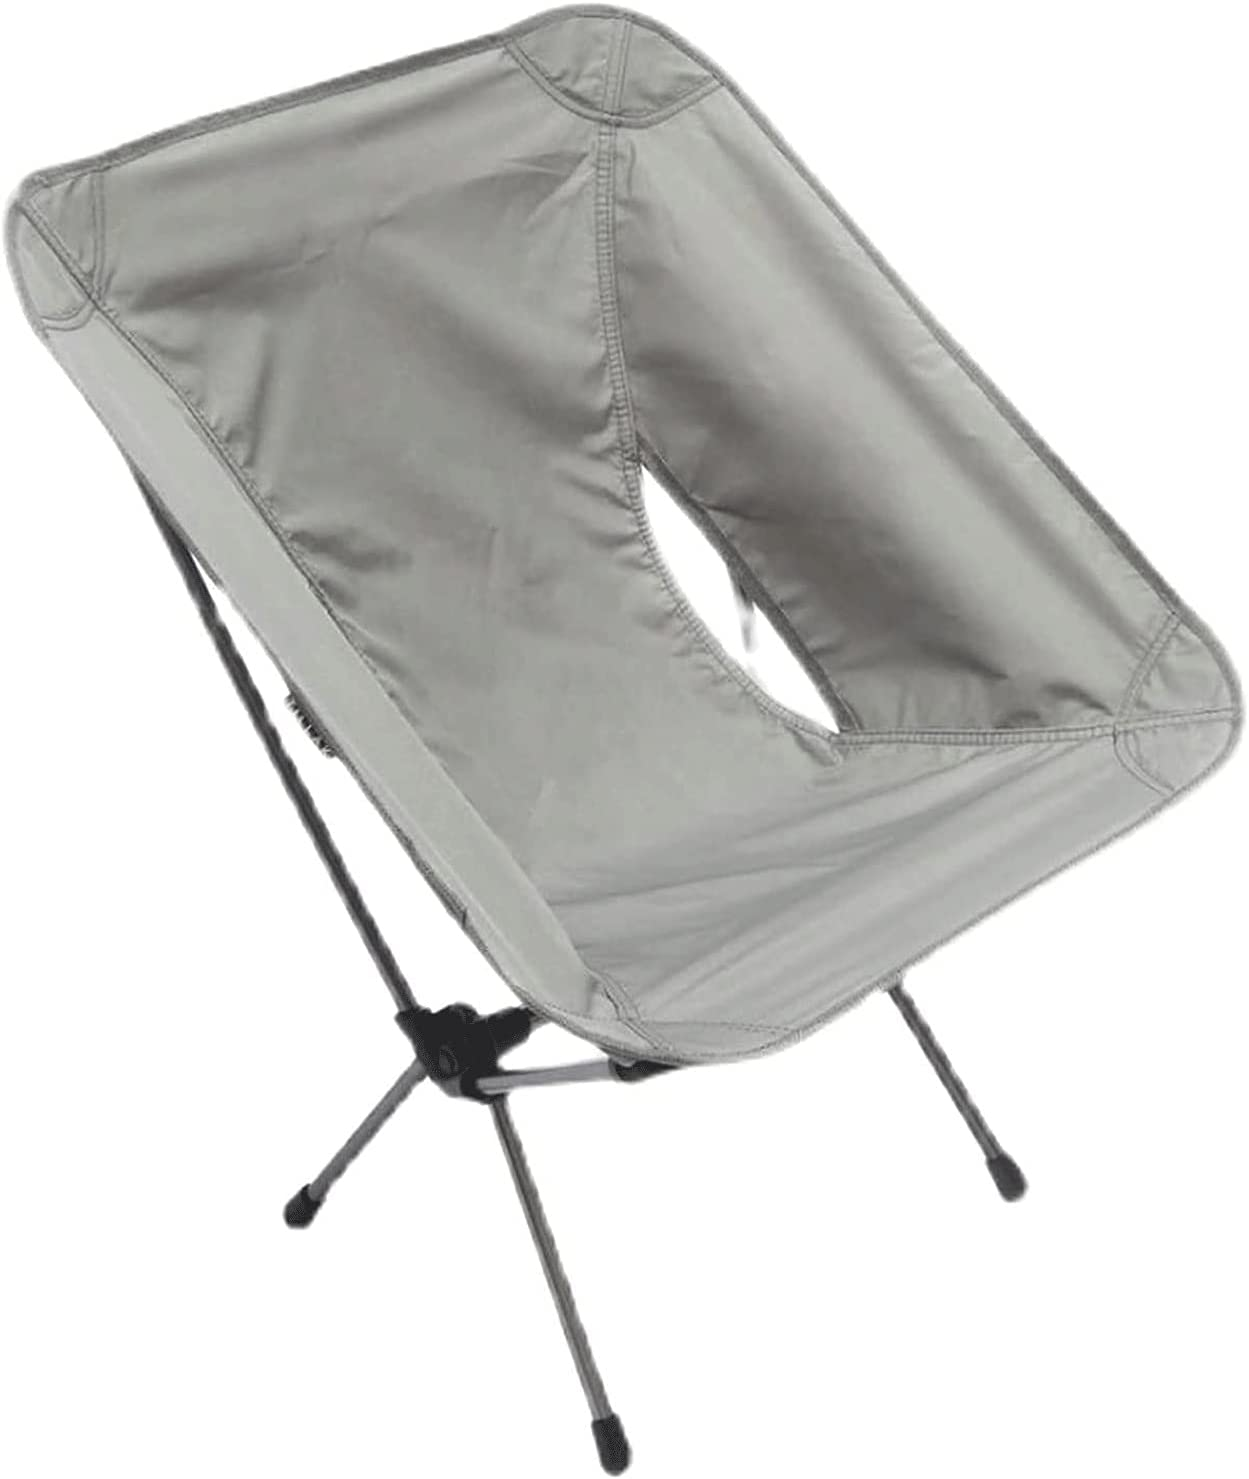 XIXIDIAN Great interest Outdoor 2021 model Chairs Ultra-Light Portable Folding Cha